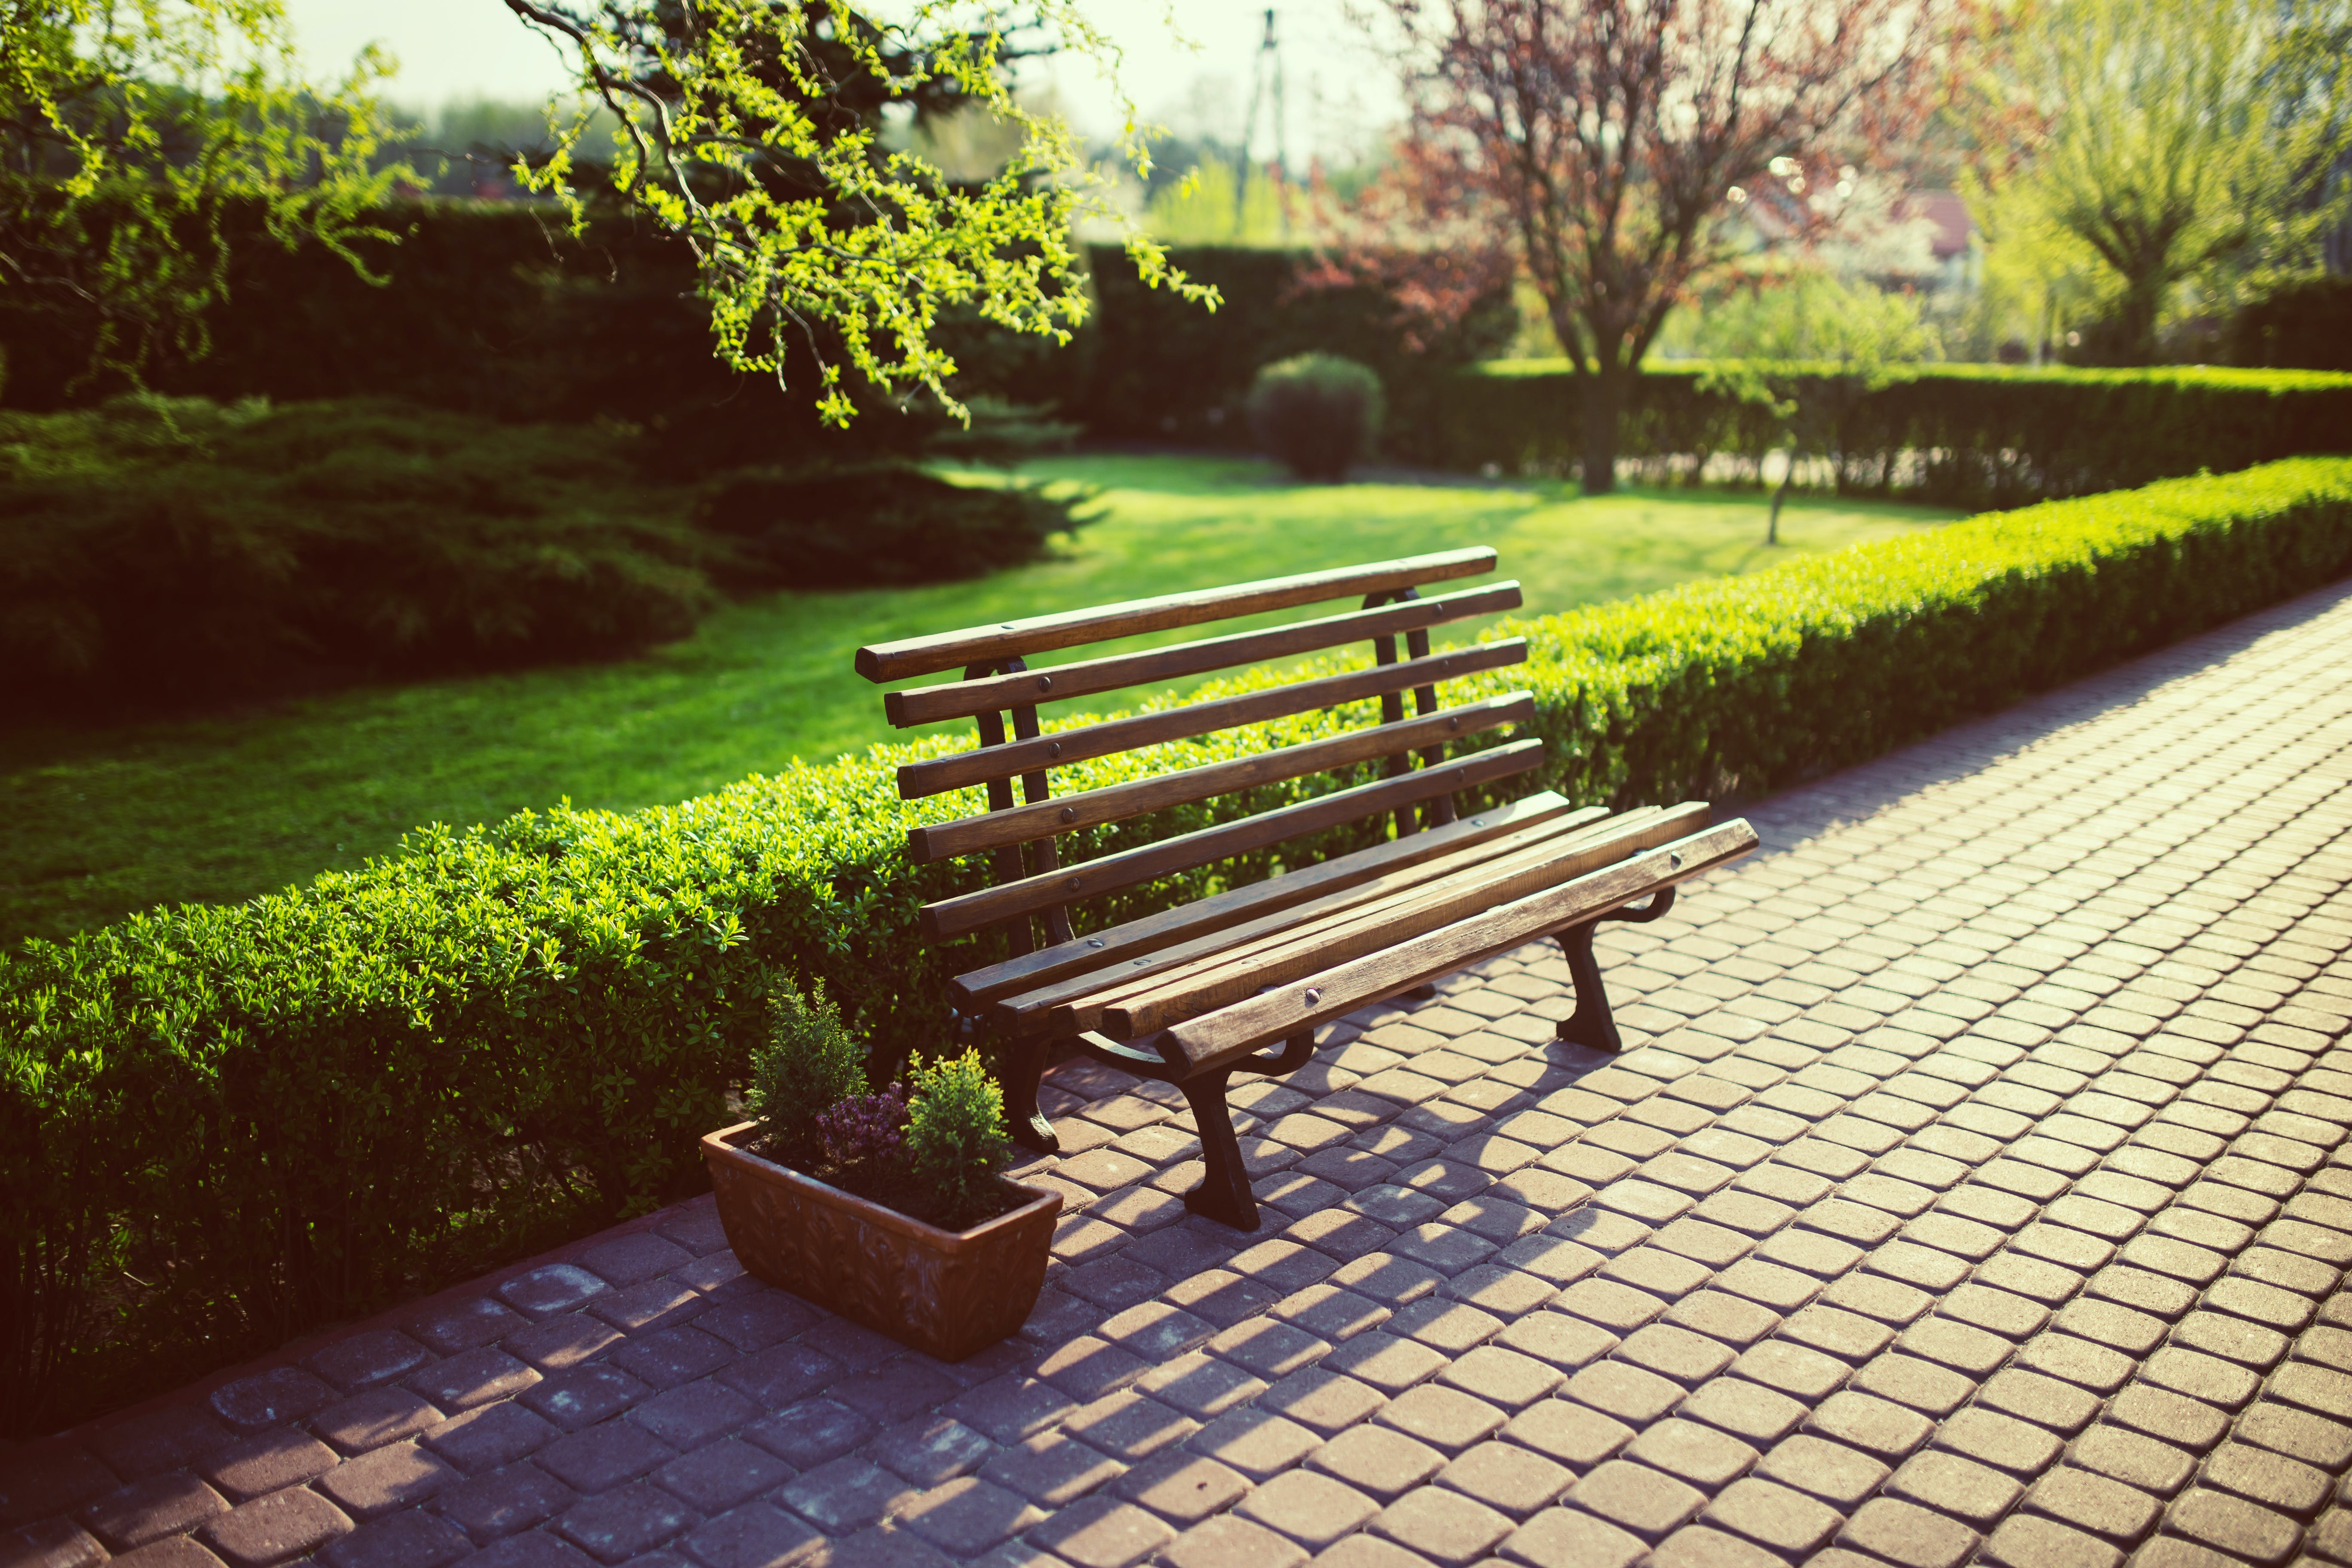 Bench in the garden